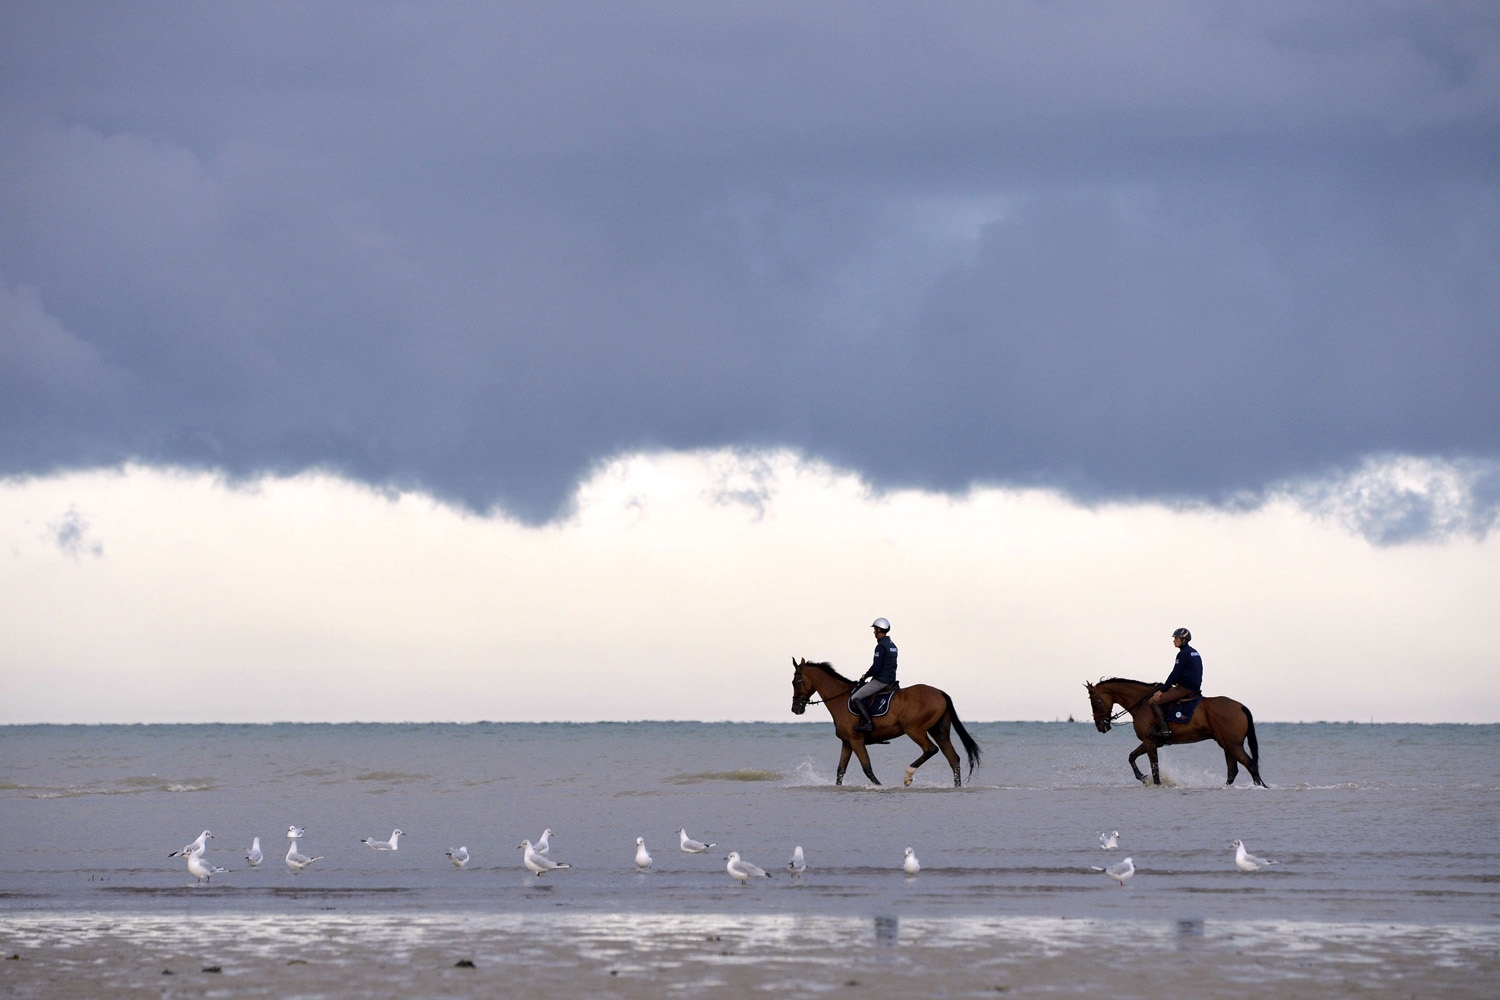 Aug. 21, 2014. Pascal Leroy (L) riding his horse Minos de Petra and Maxime Livio (R) riding Qalao des Mers take part in a training session of the eventing French national team at the Saint-Martin-de-Brehal beach prior to the start of the 2014 Alltech FEI World Equestrian Games in Normandy.